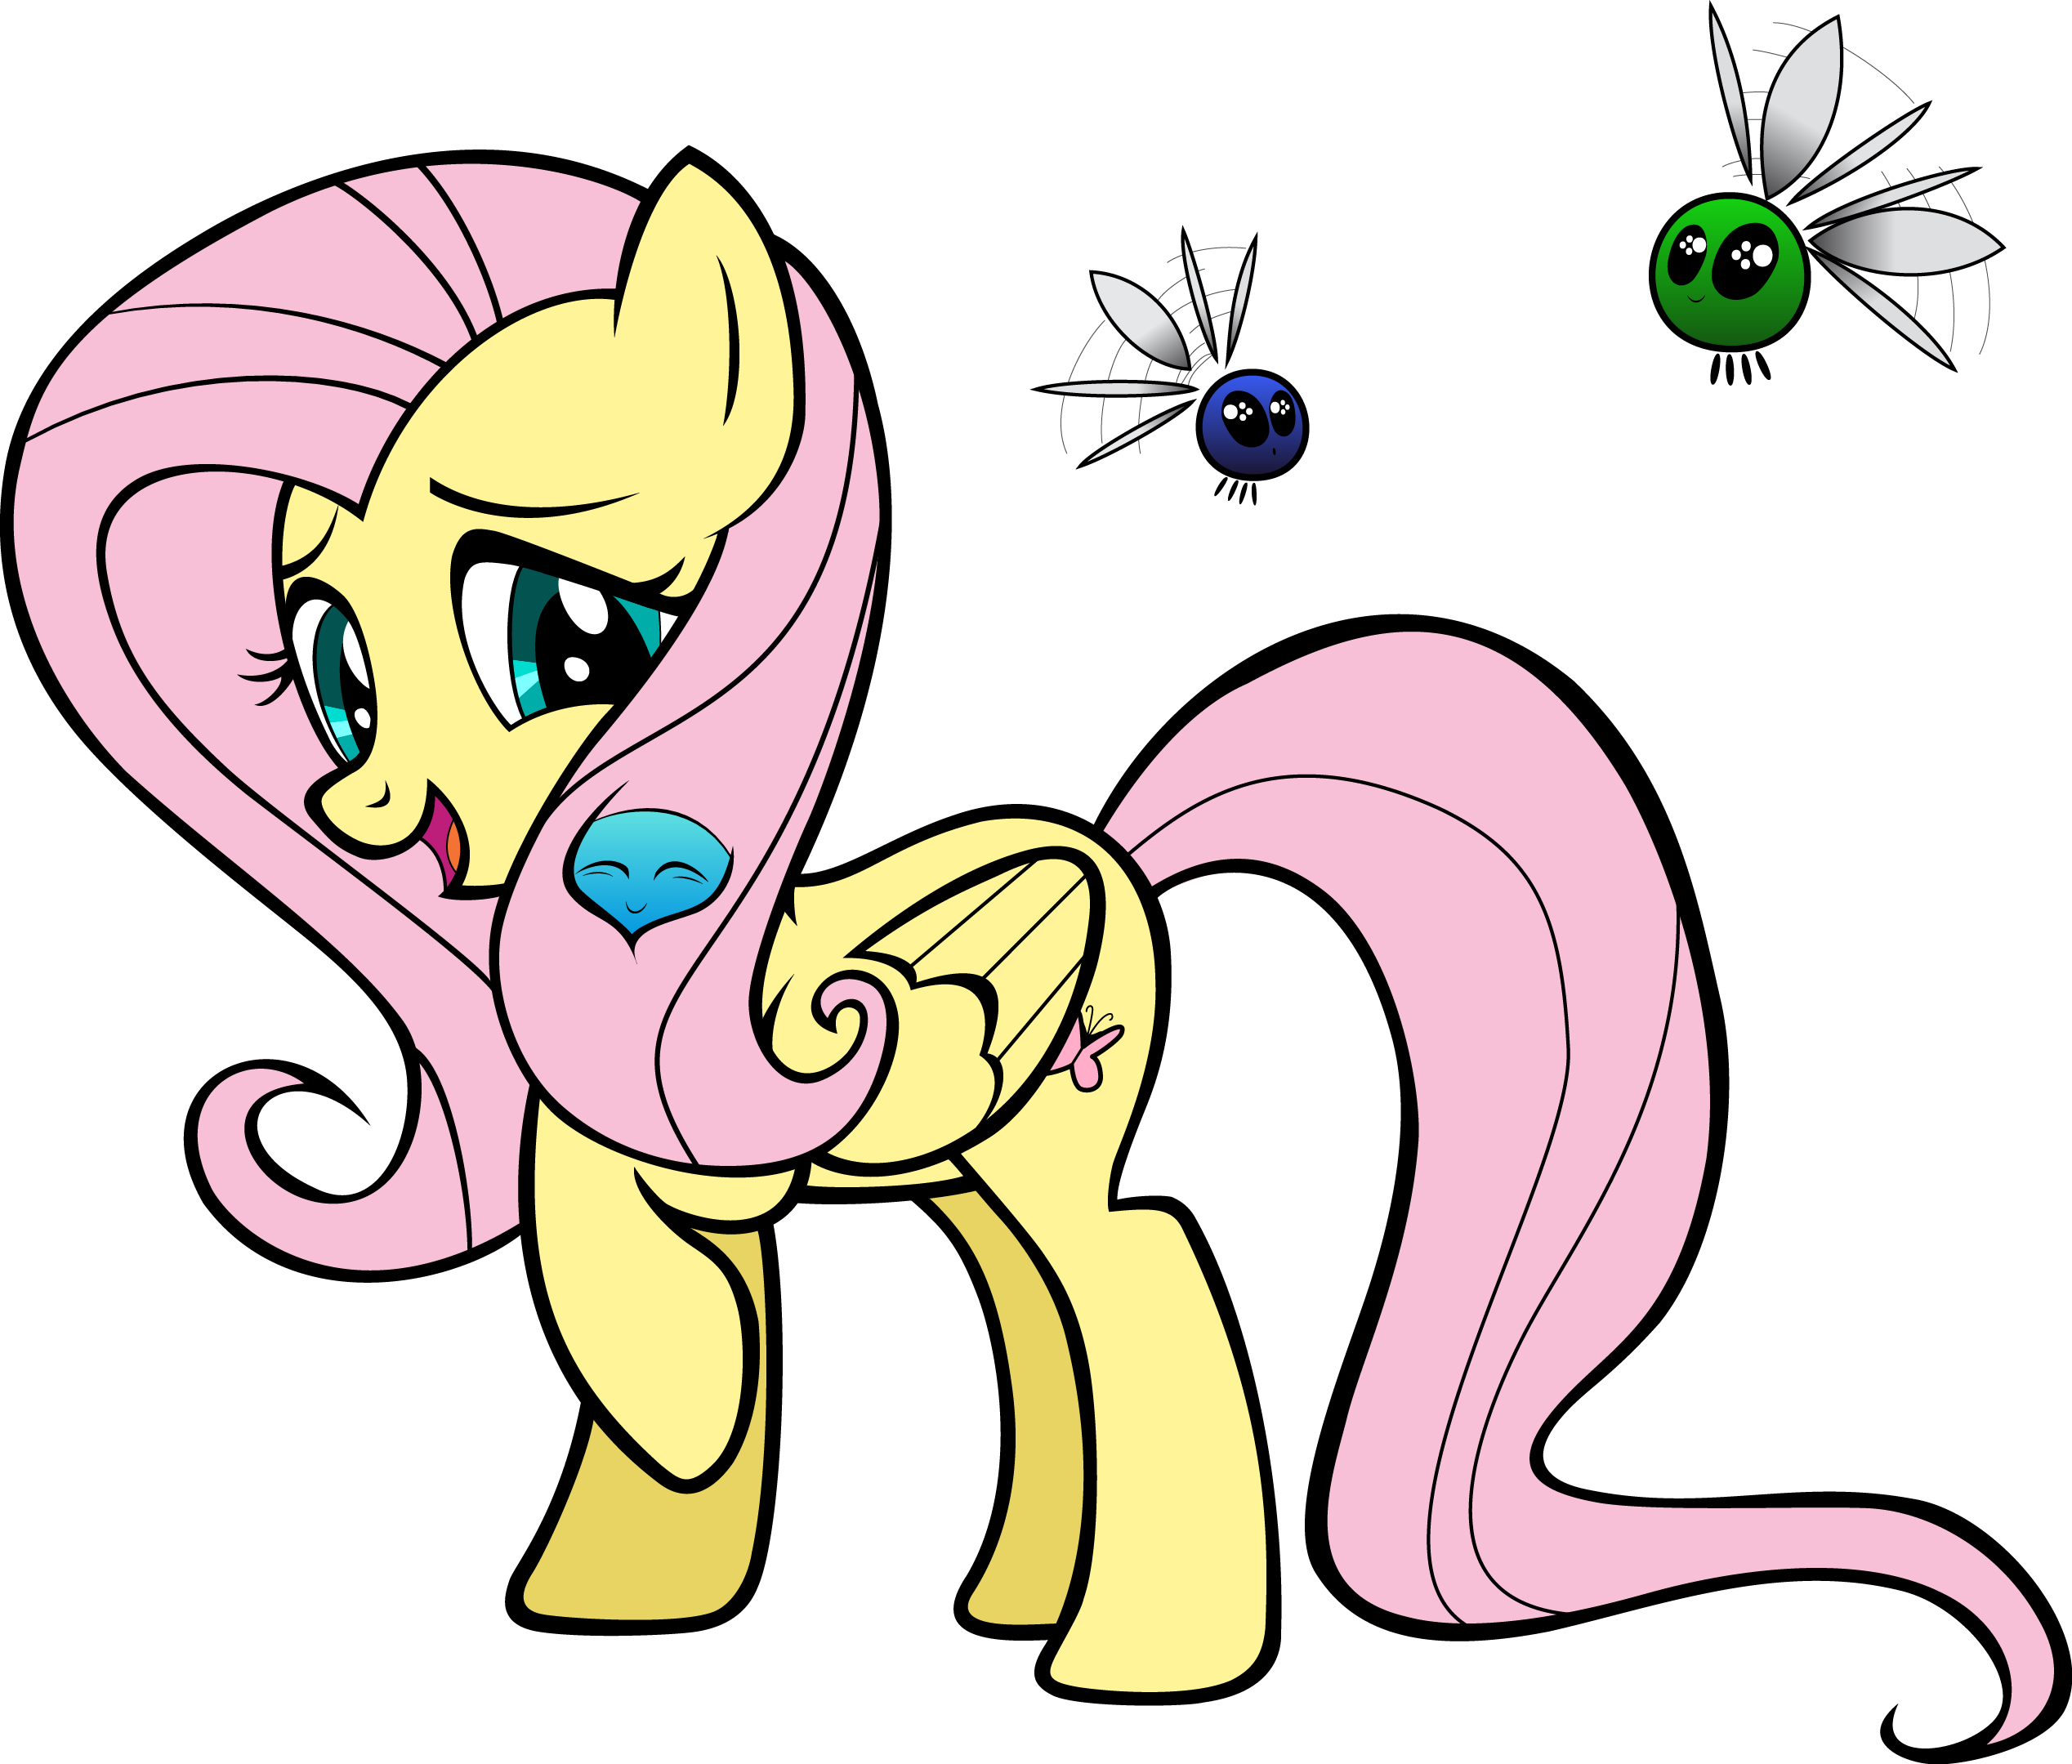 Coloring pages vector - Vector By Comicalbrony Fluttershy Coloring Page Vector By Comicalbrony